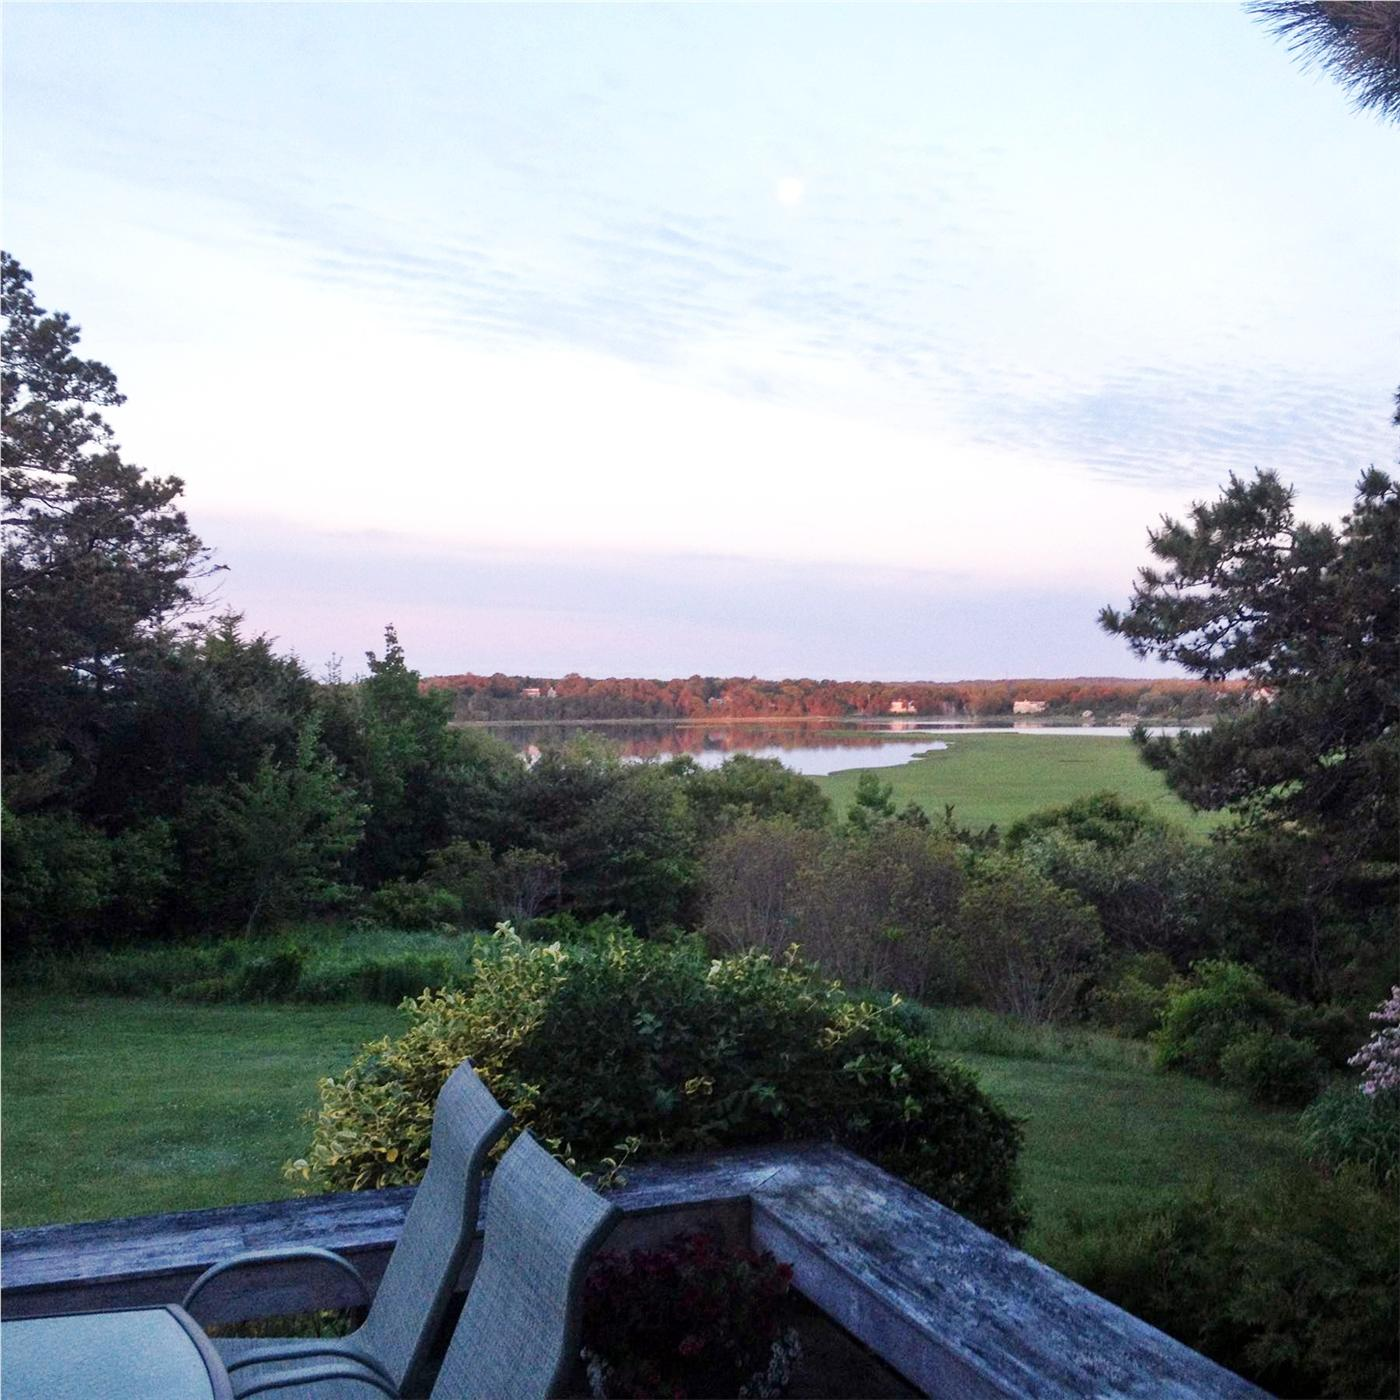 Orleans Vacation Rental Home In Cape Cod MA 02643, 4/10